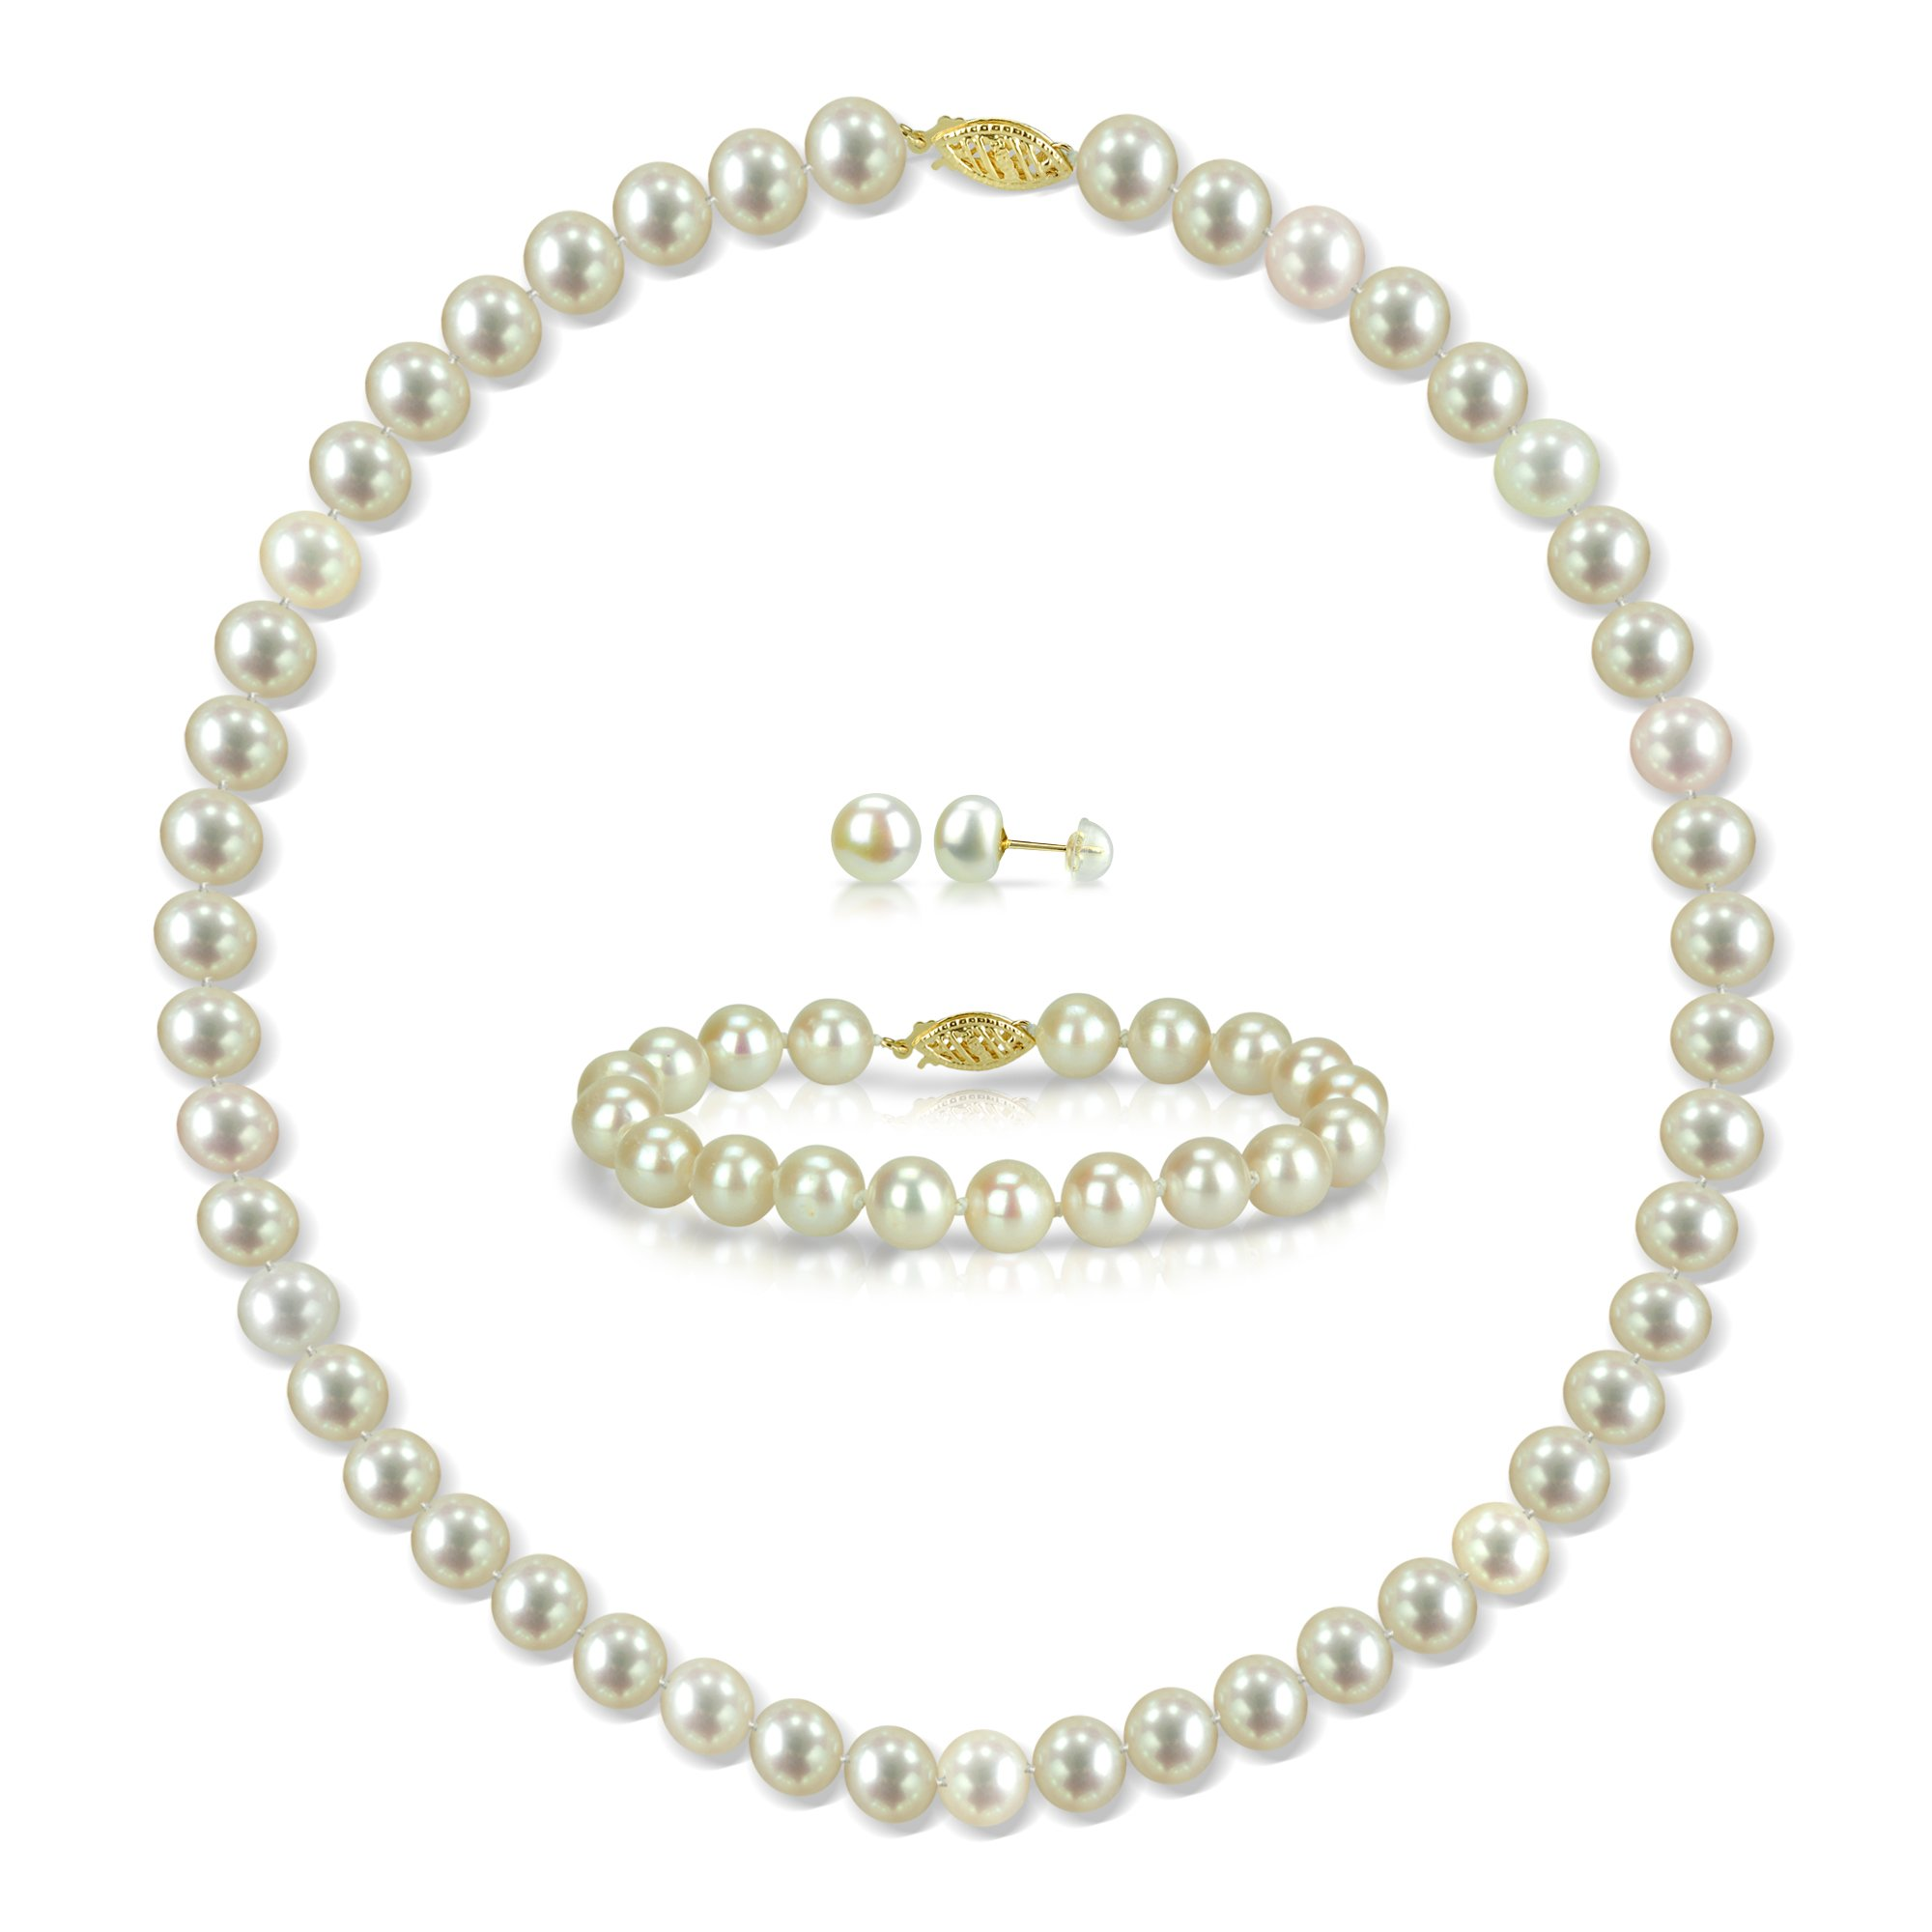 14k Yellow Gold 8-8.5mm White Freshwater Cultured Pearl Necklace 18'' , Bracelet 7'' and Stud Earrings